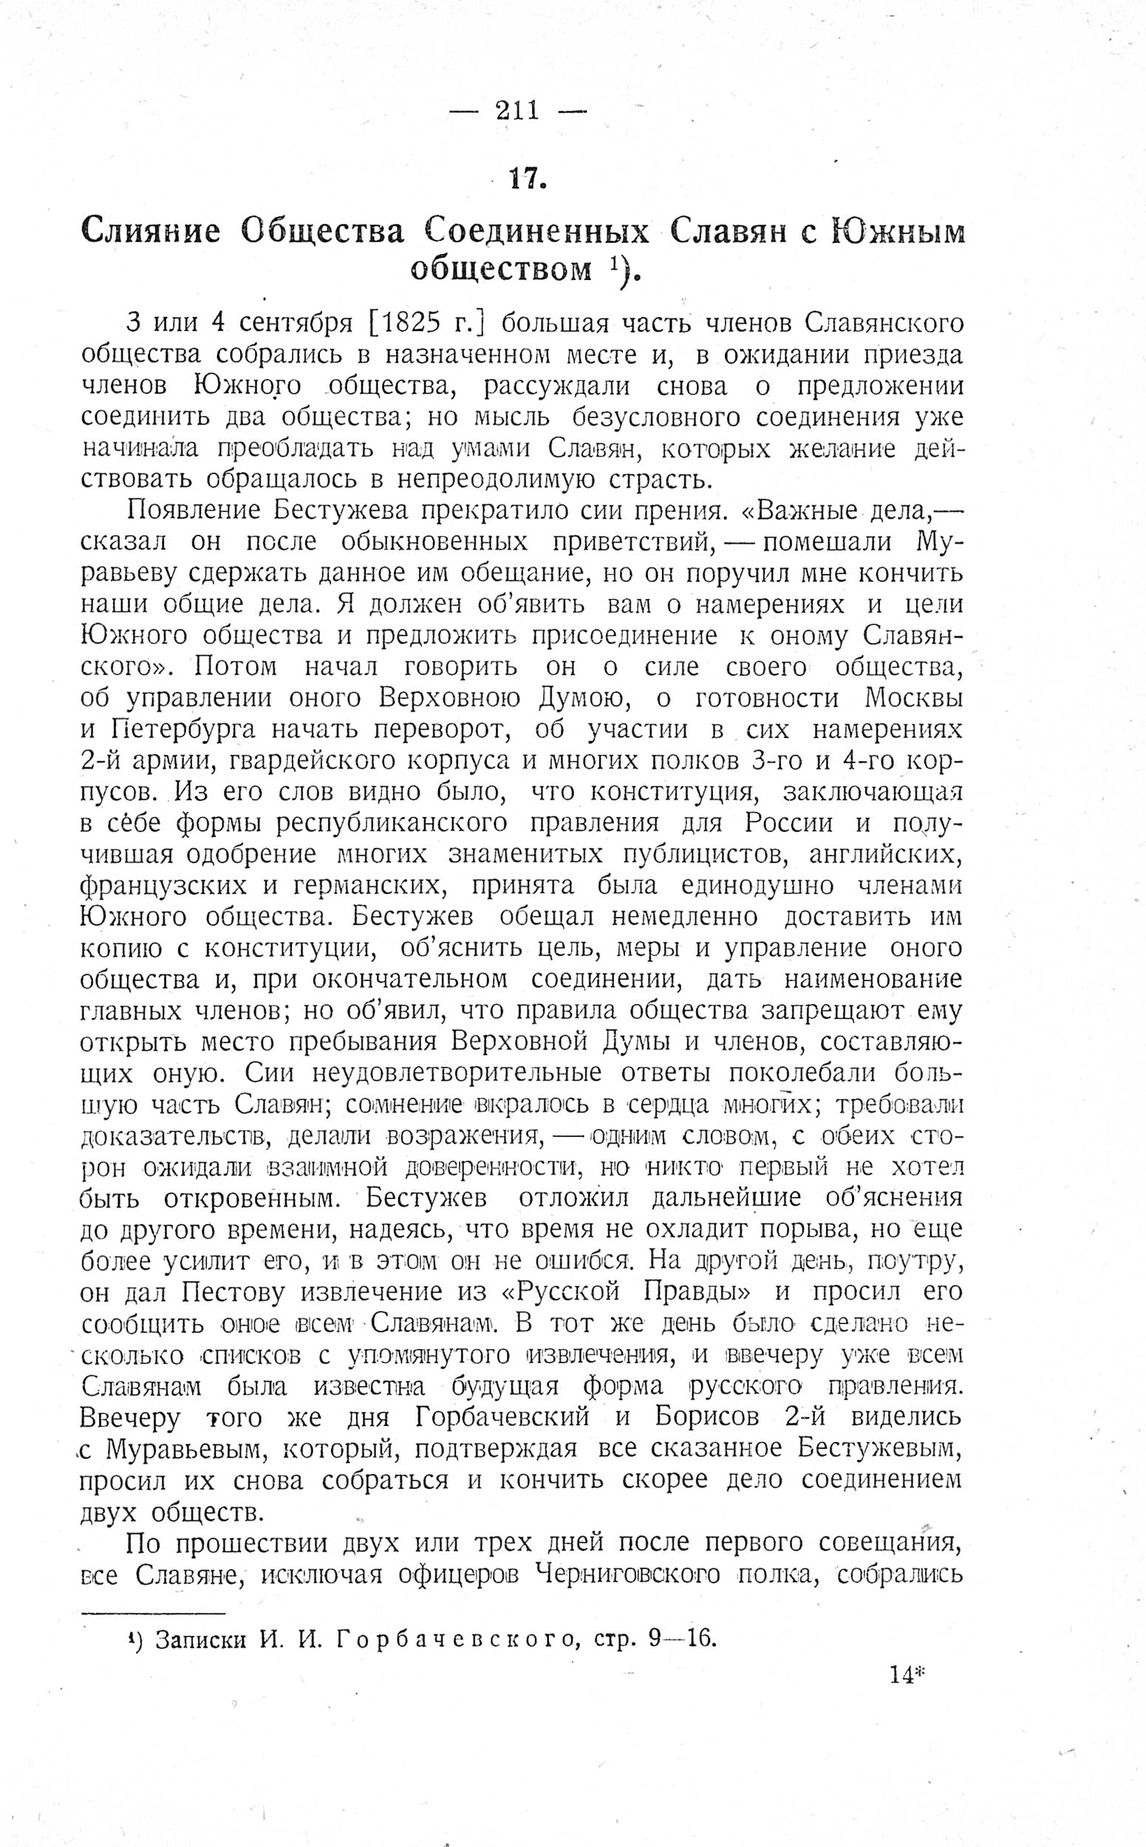 http://elib.shpl.ru/pages/625794/zooms/7